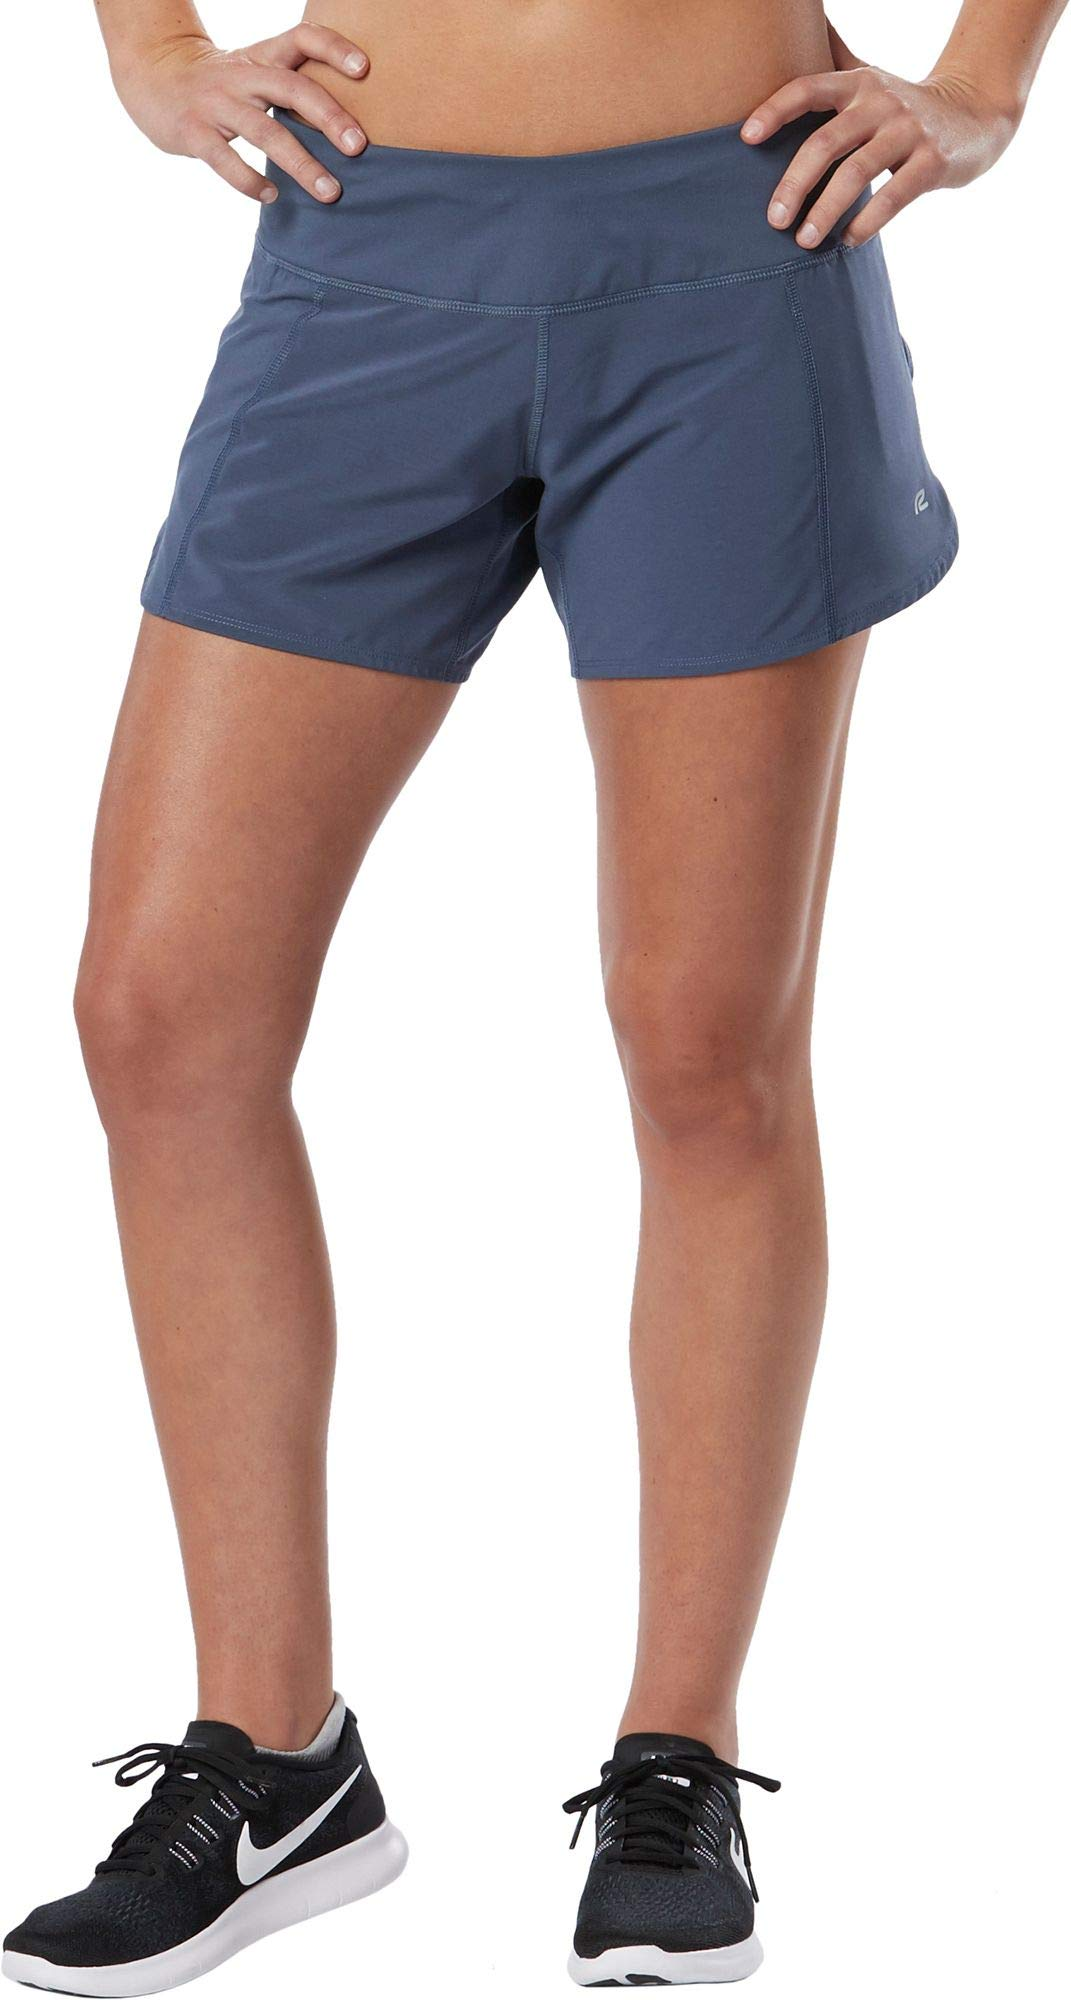 R-Gear Women's 5-Inch Running Workout Shorts with Pockets and Brief Liner   Outpace